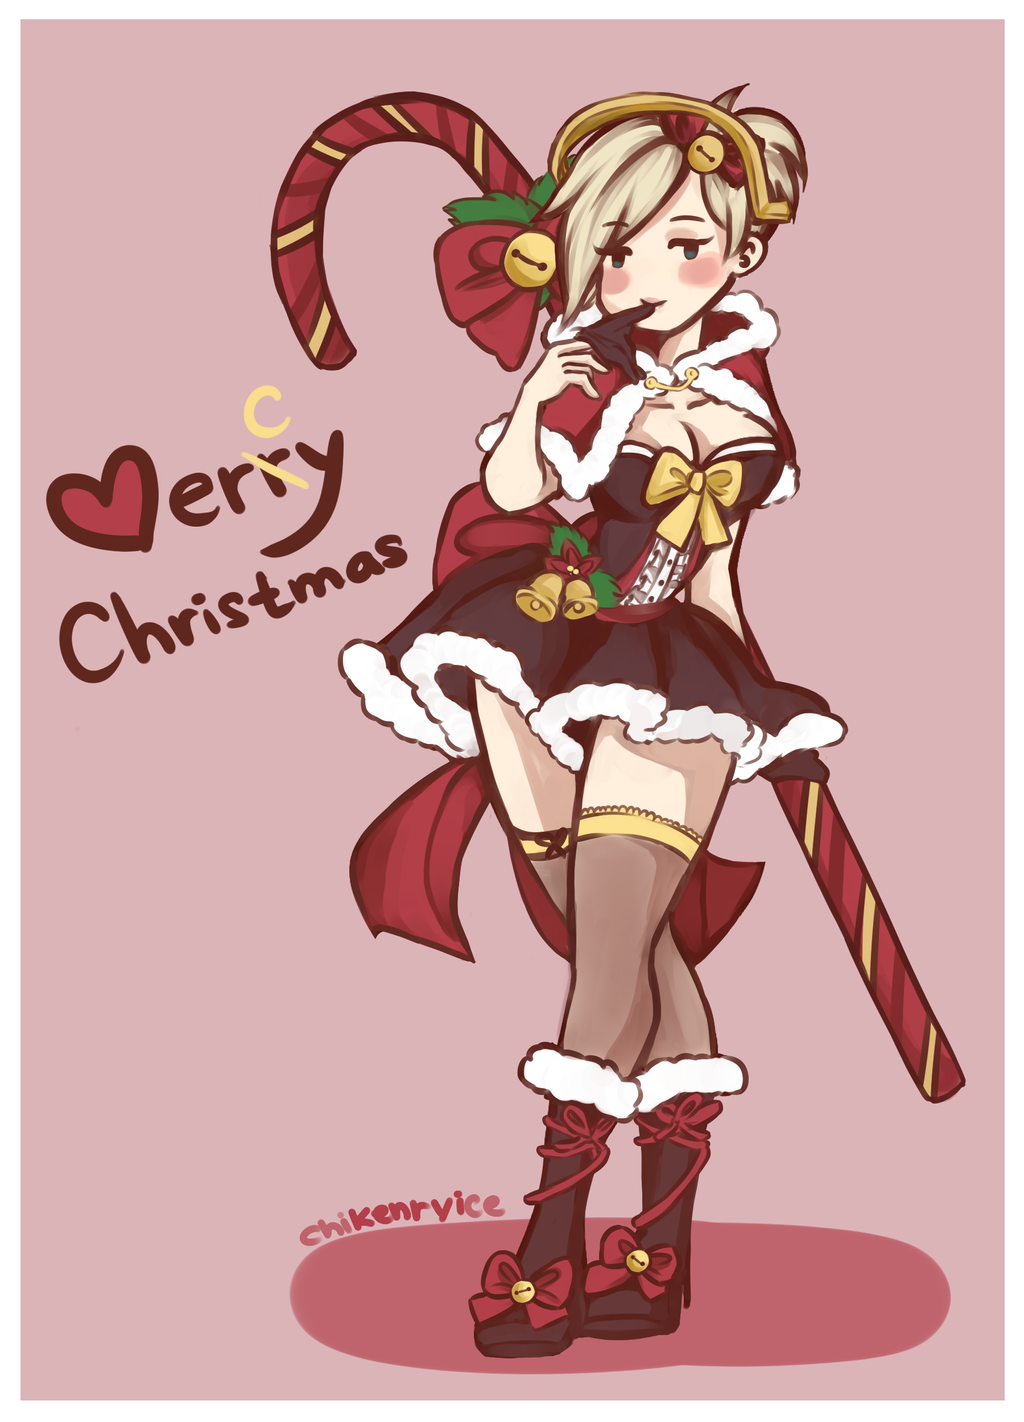 Christmas Mercy by kenryi on DeviantArt